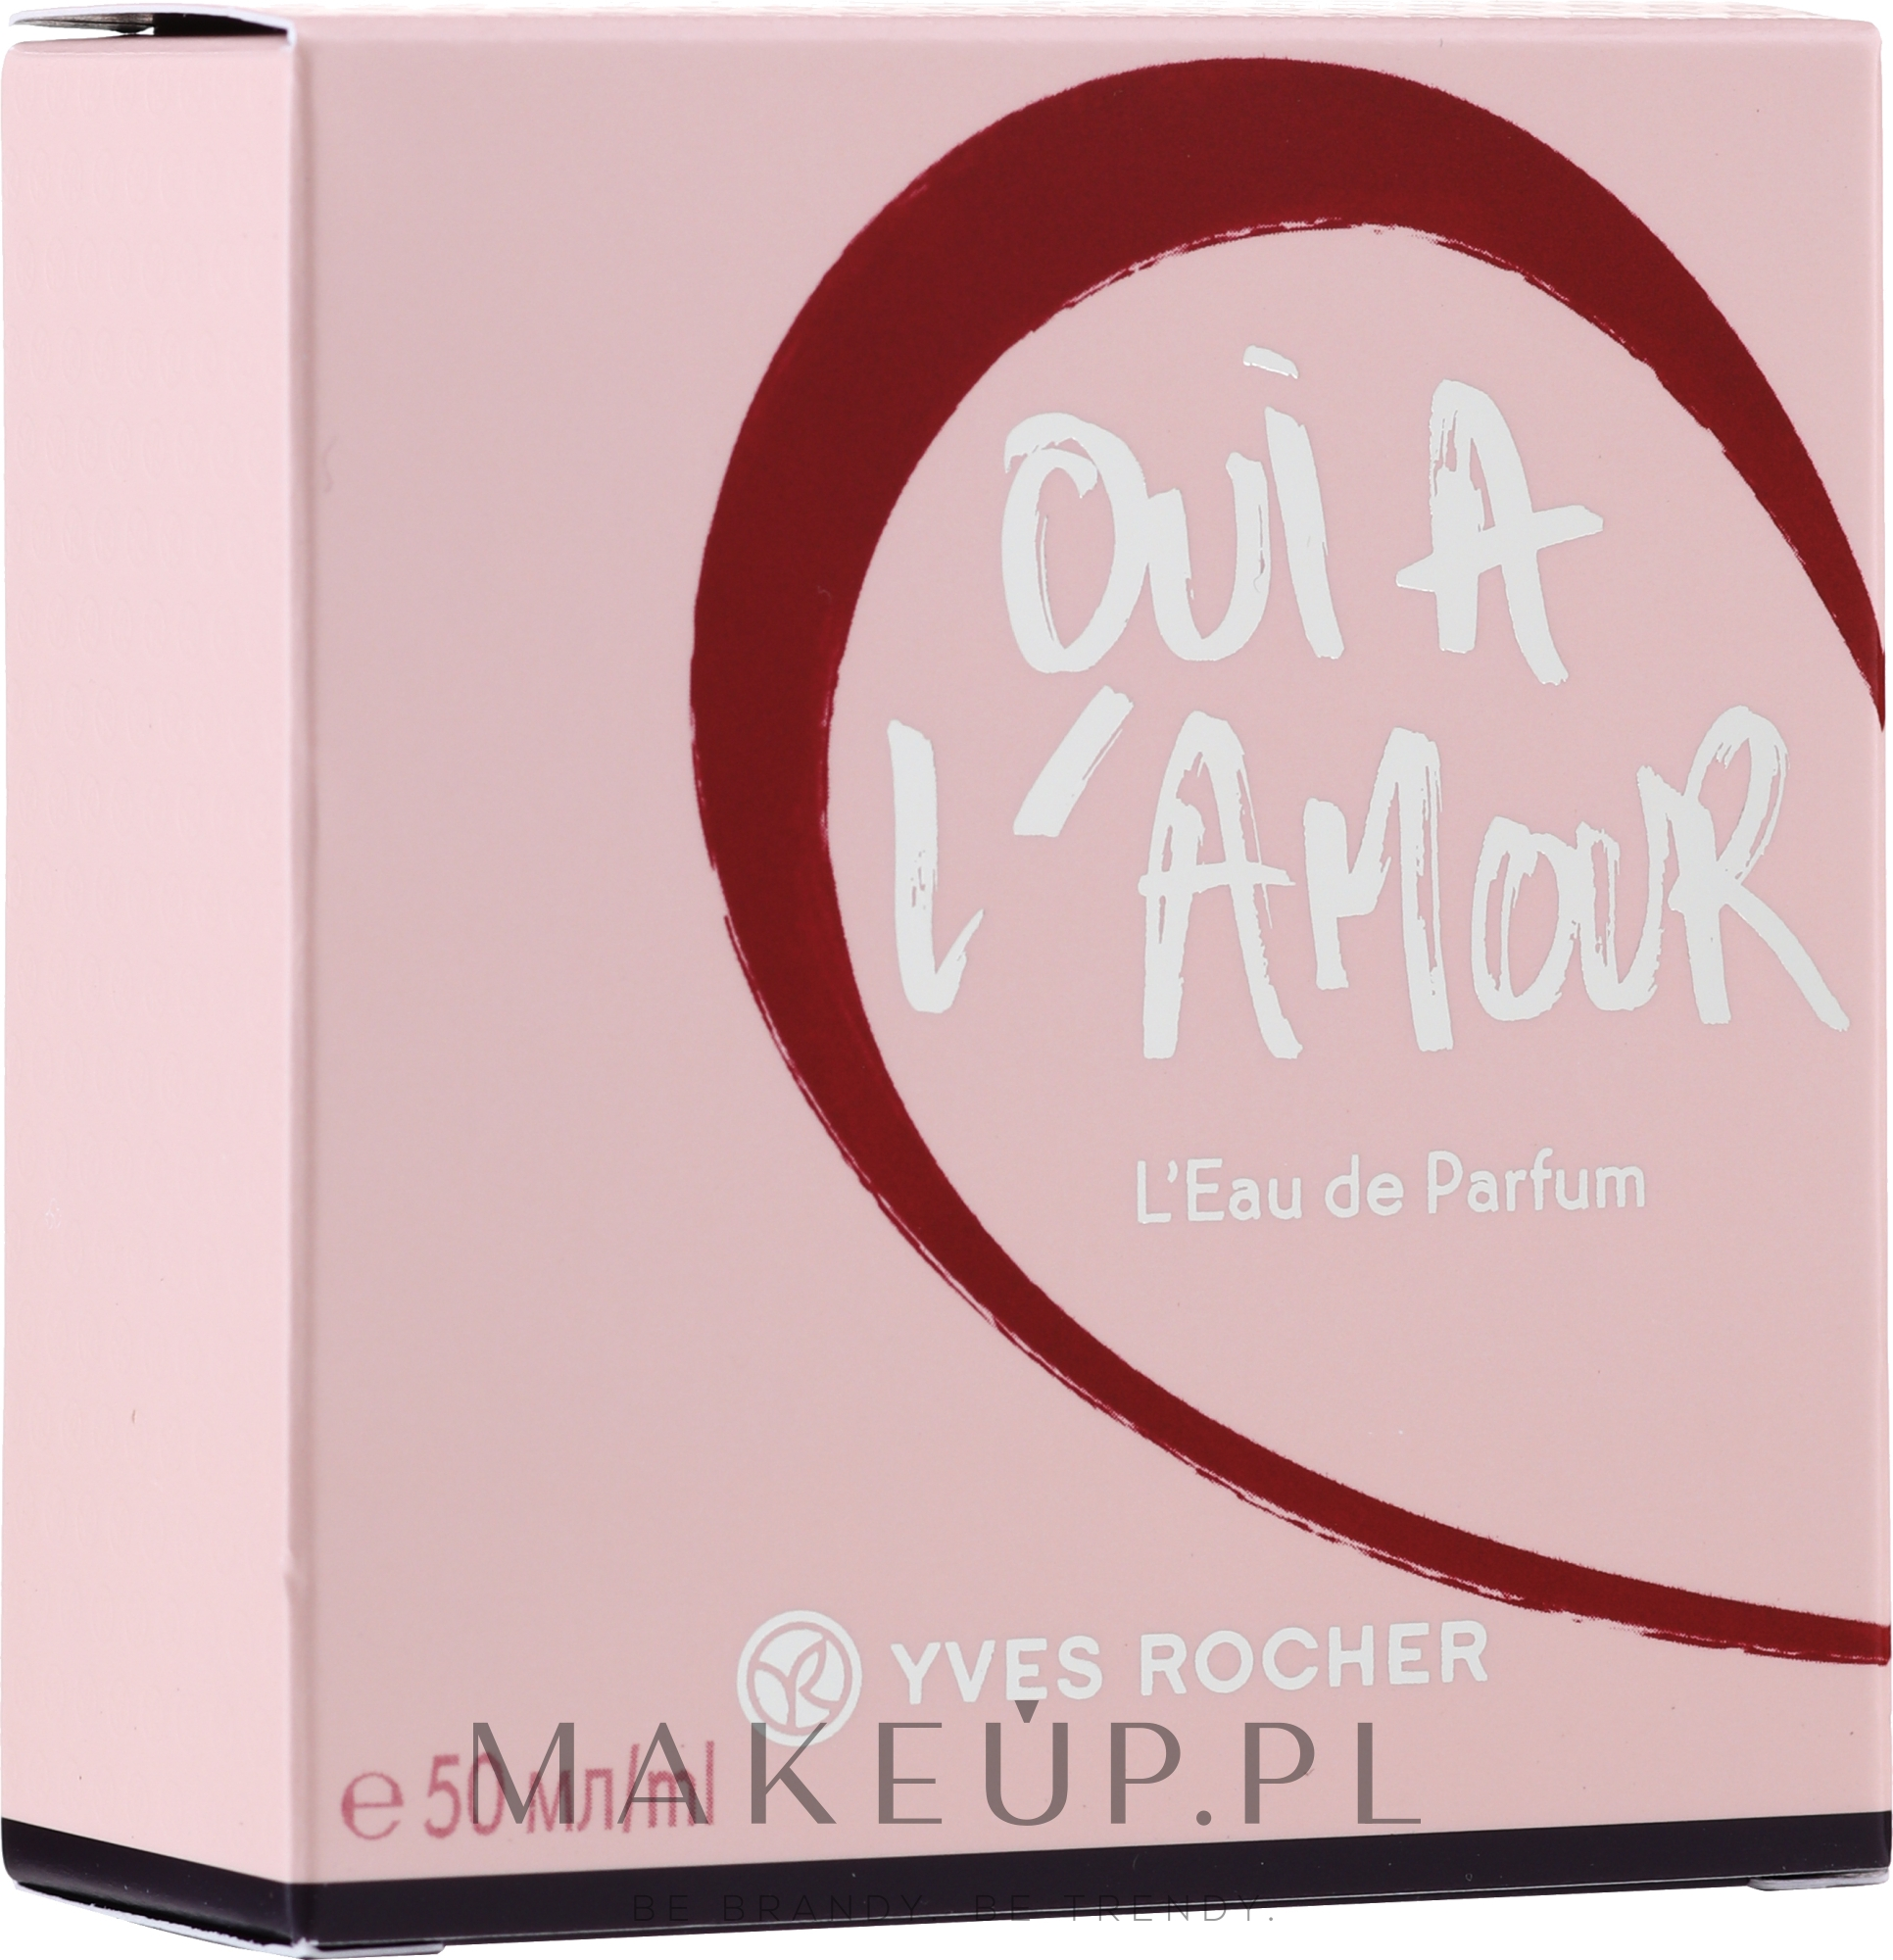 yves rocher oui a l'amour